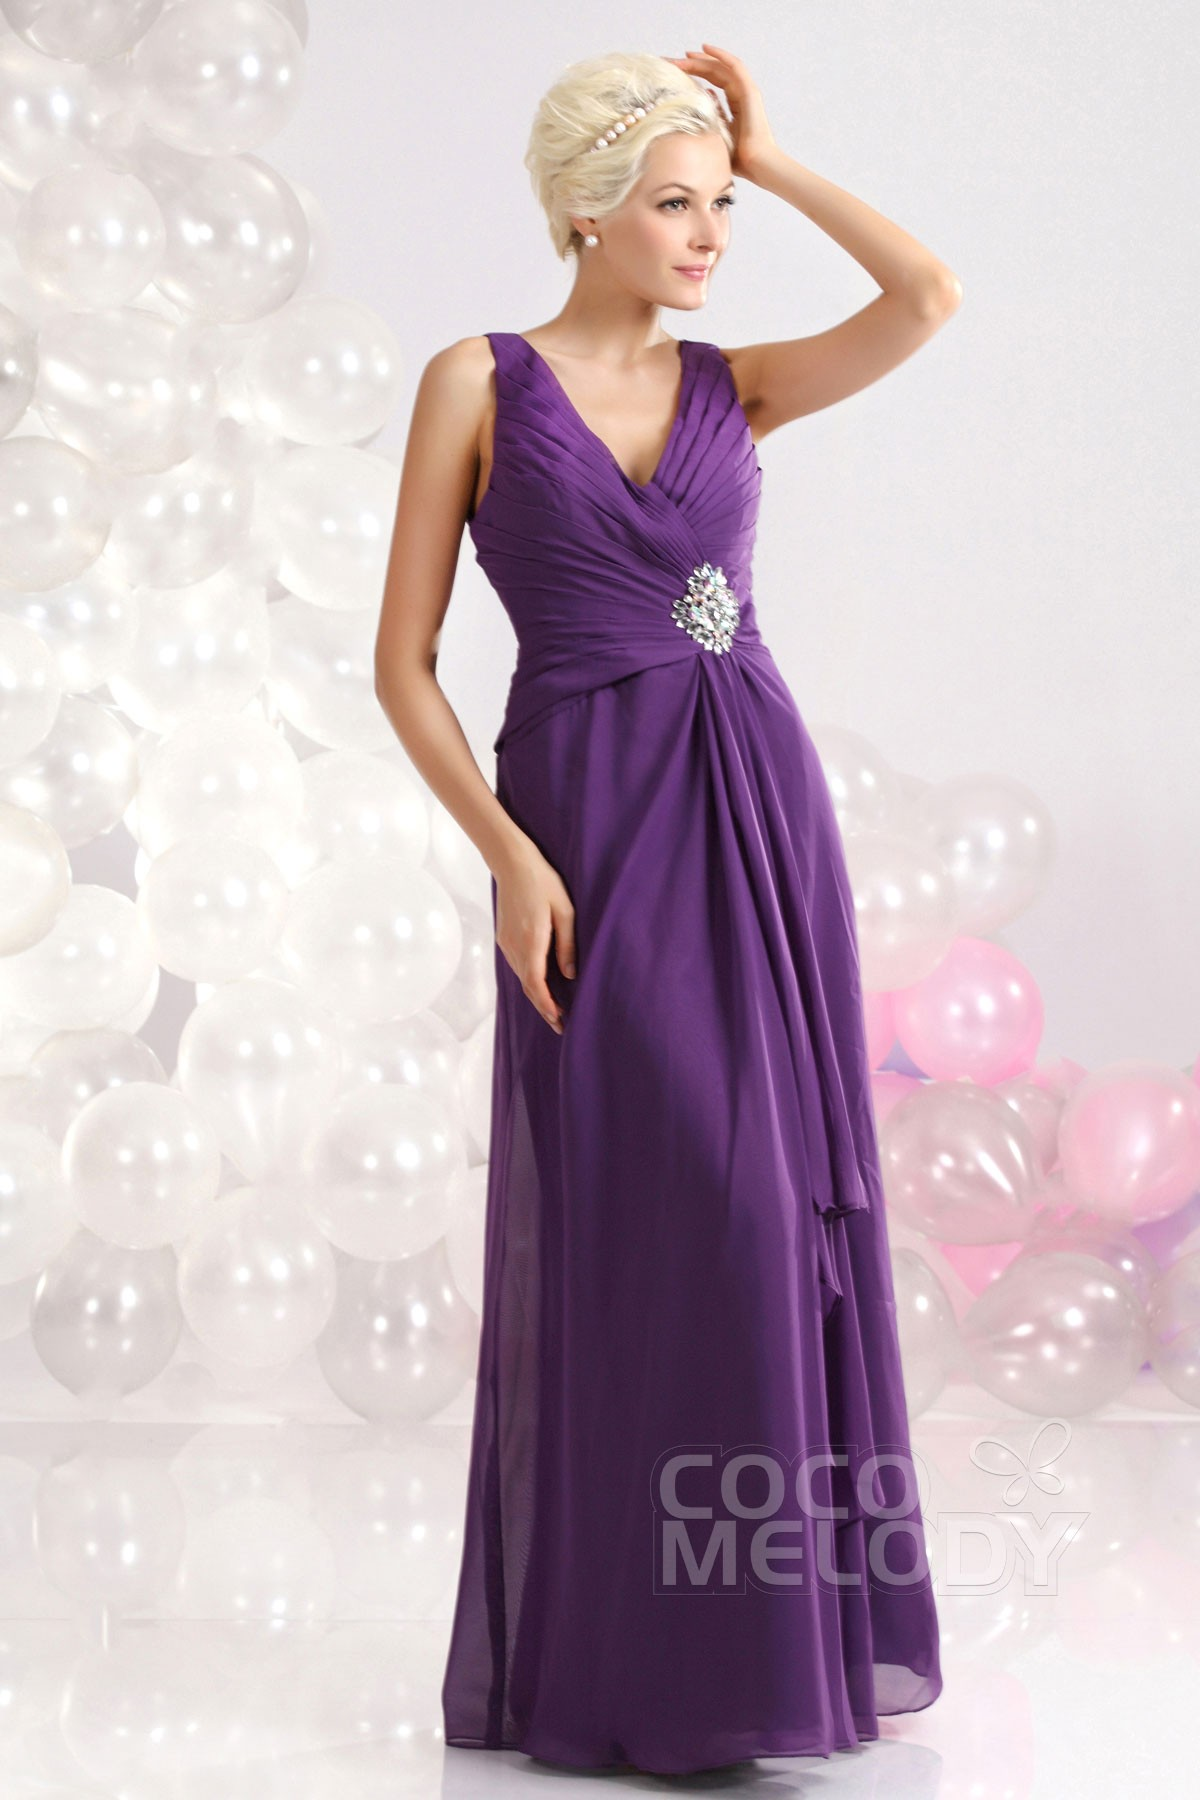 Sheath Column V Neck Floor Length Chiffon Purple Evening Dress D12018